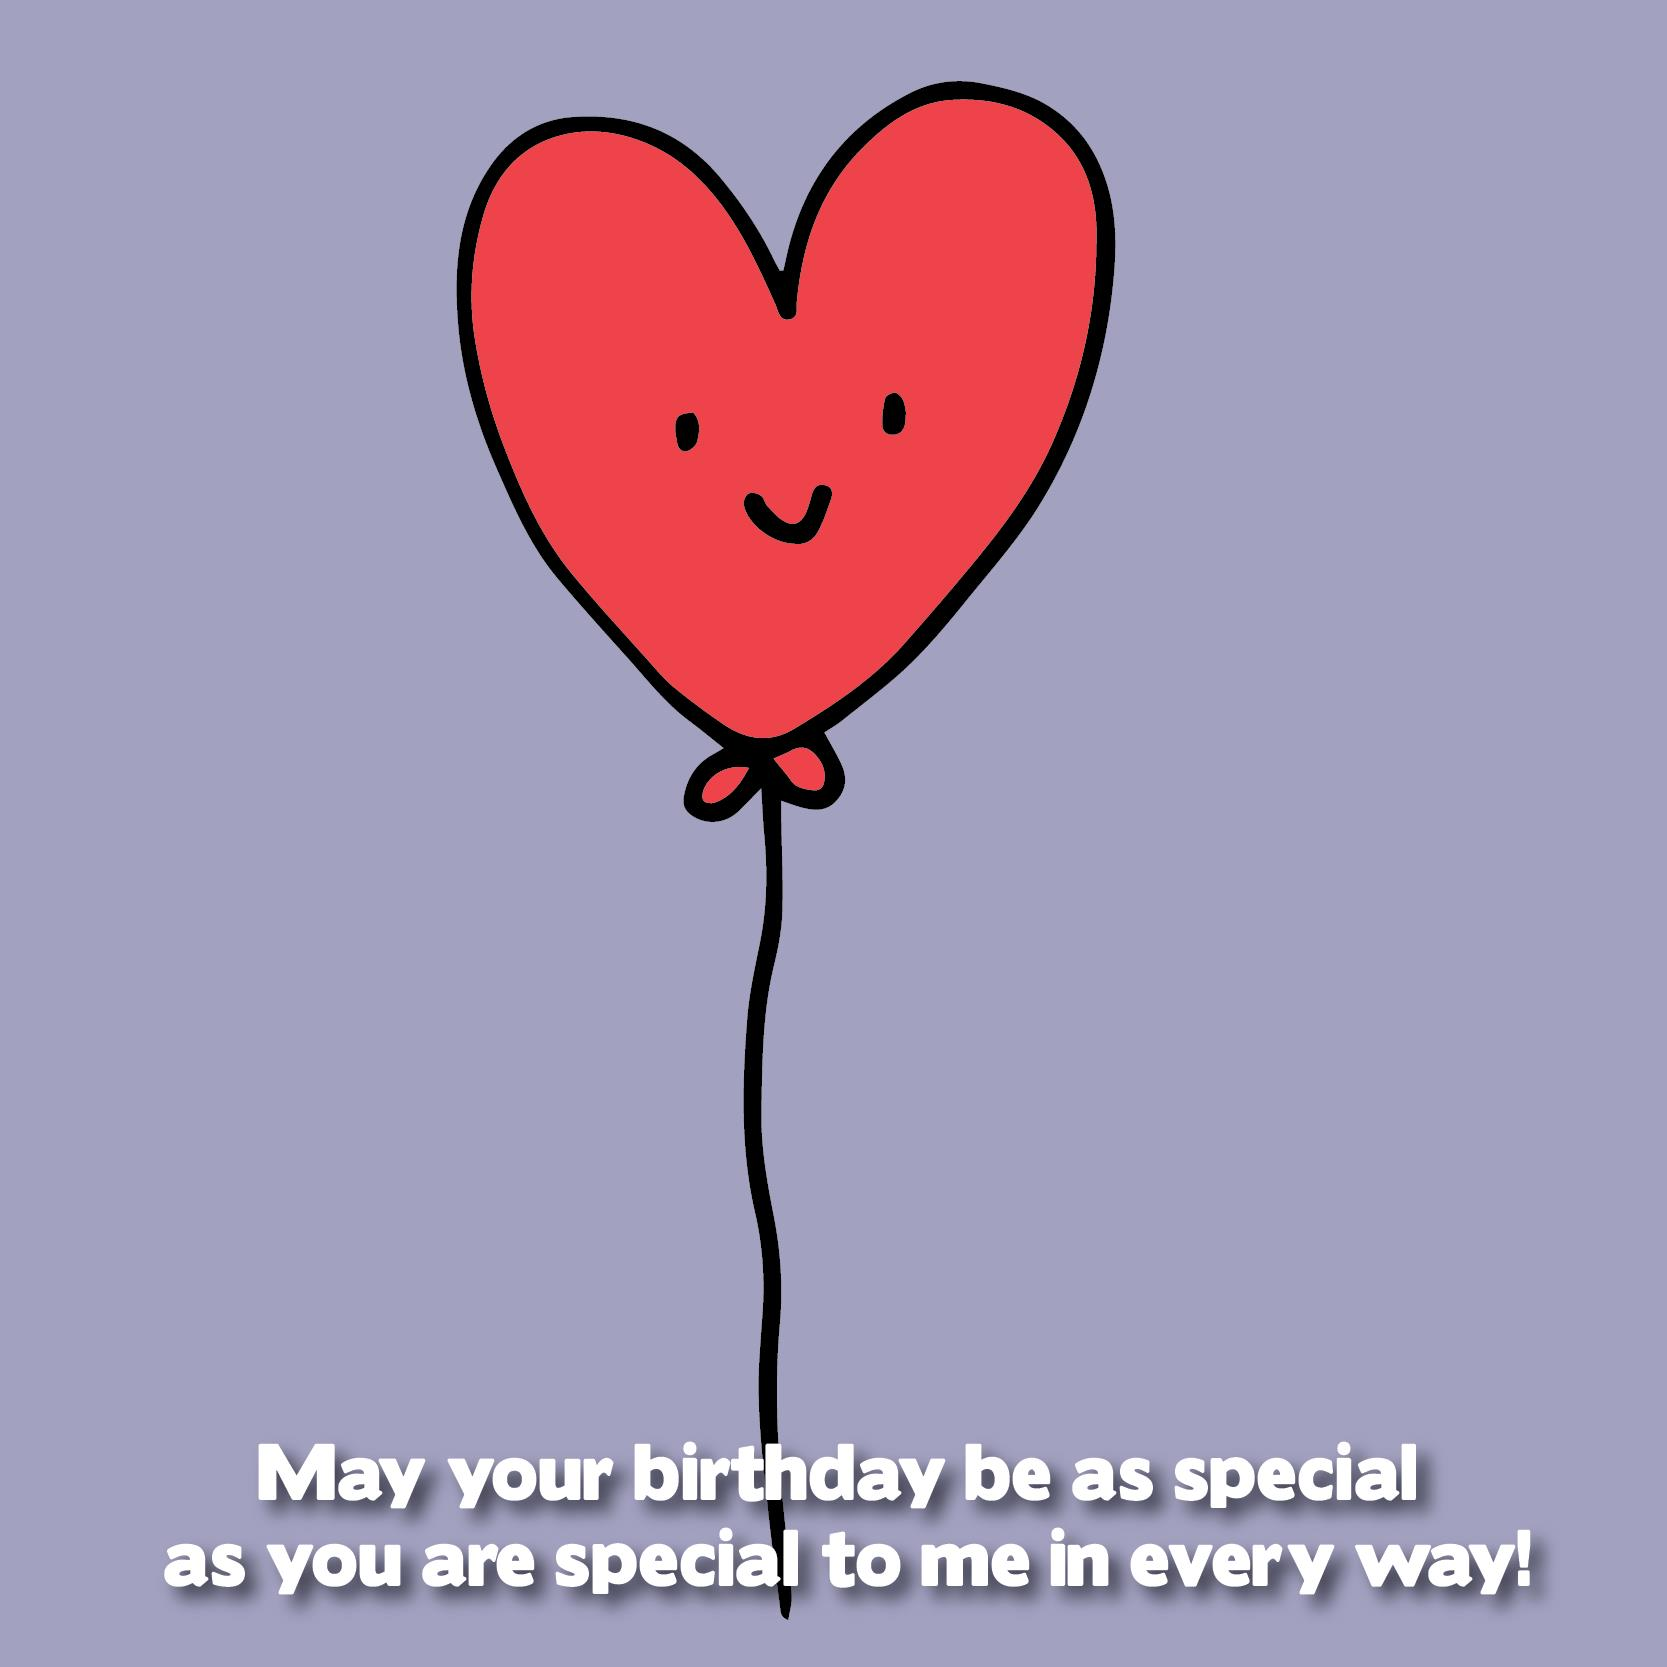 birthday-wishes-for-someone-special-02